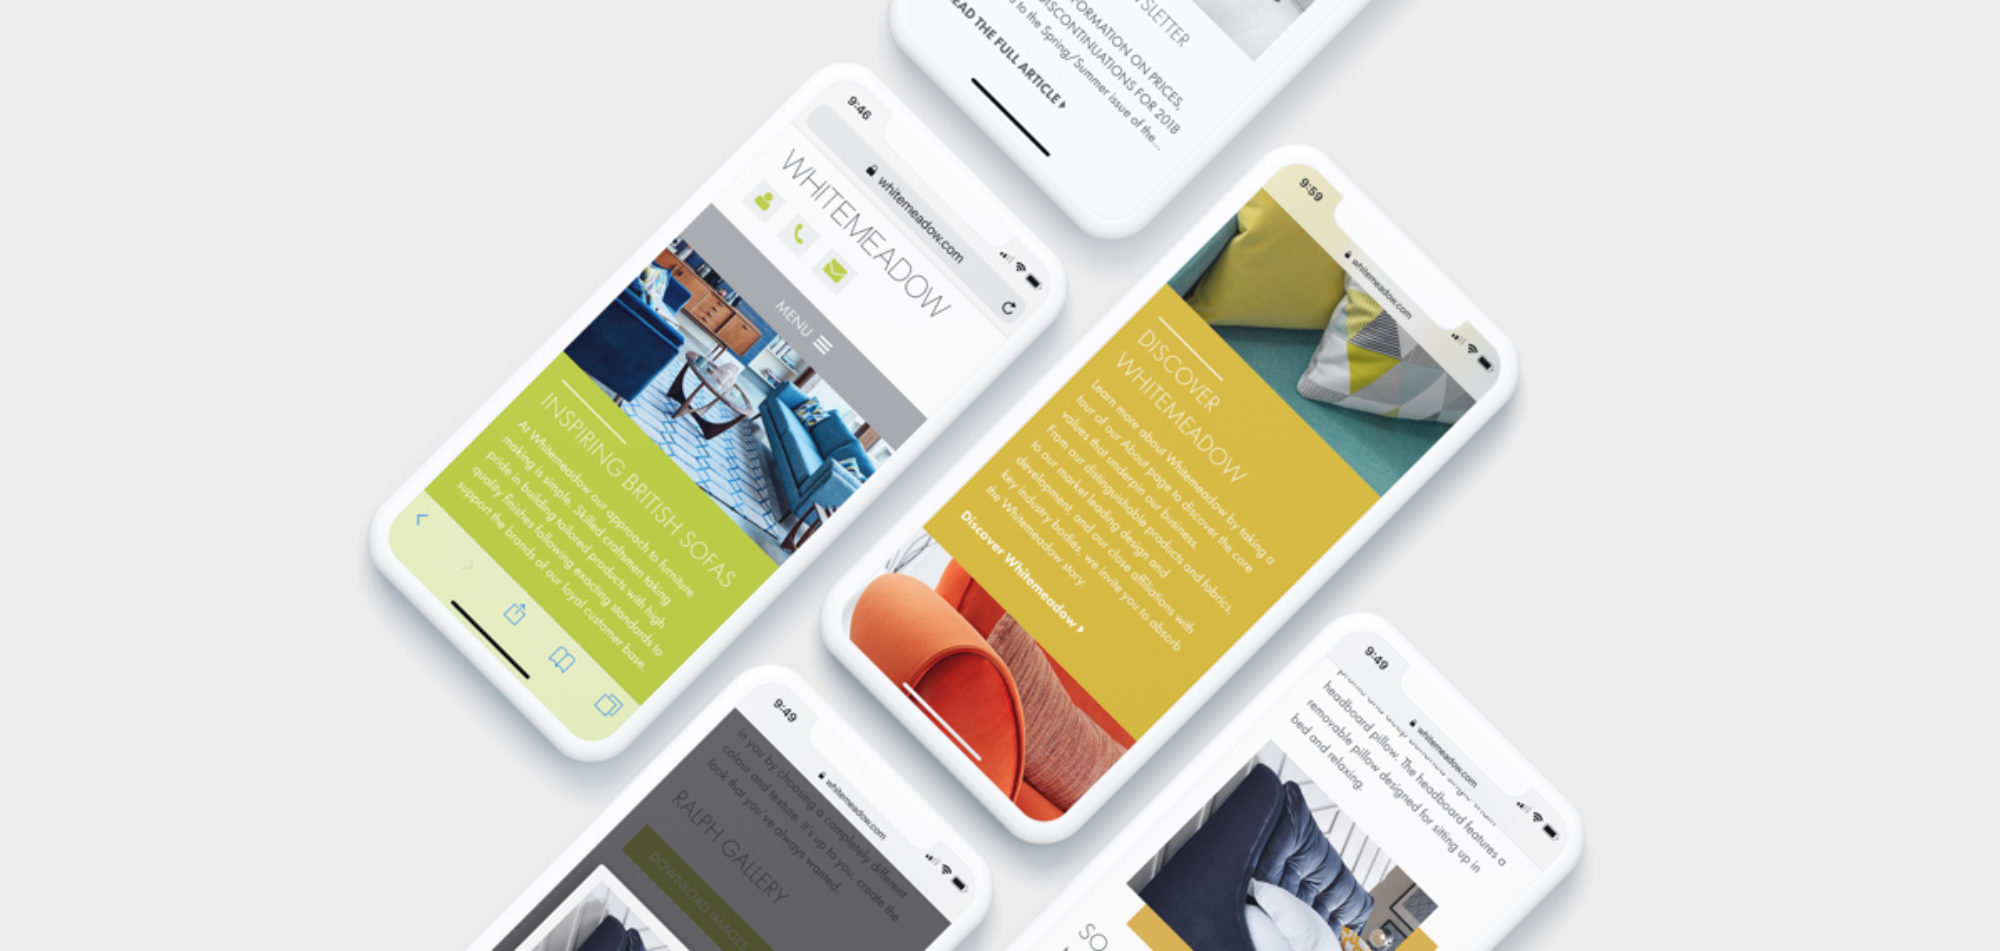 Full width case study image